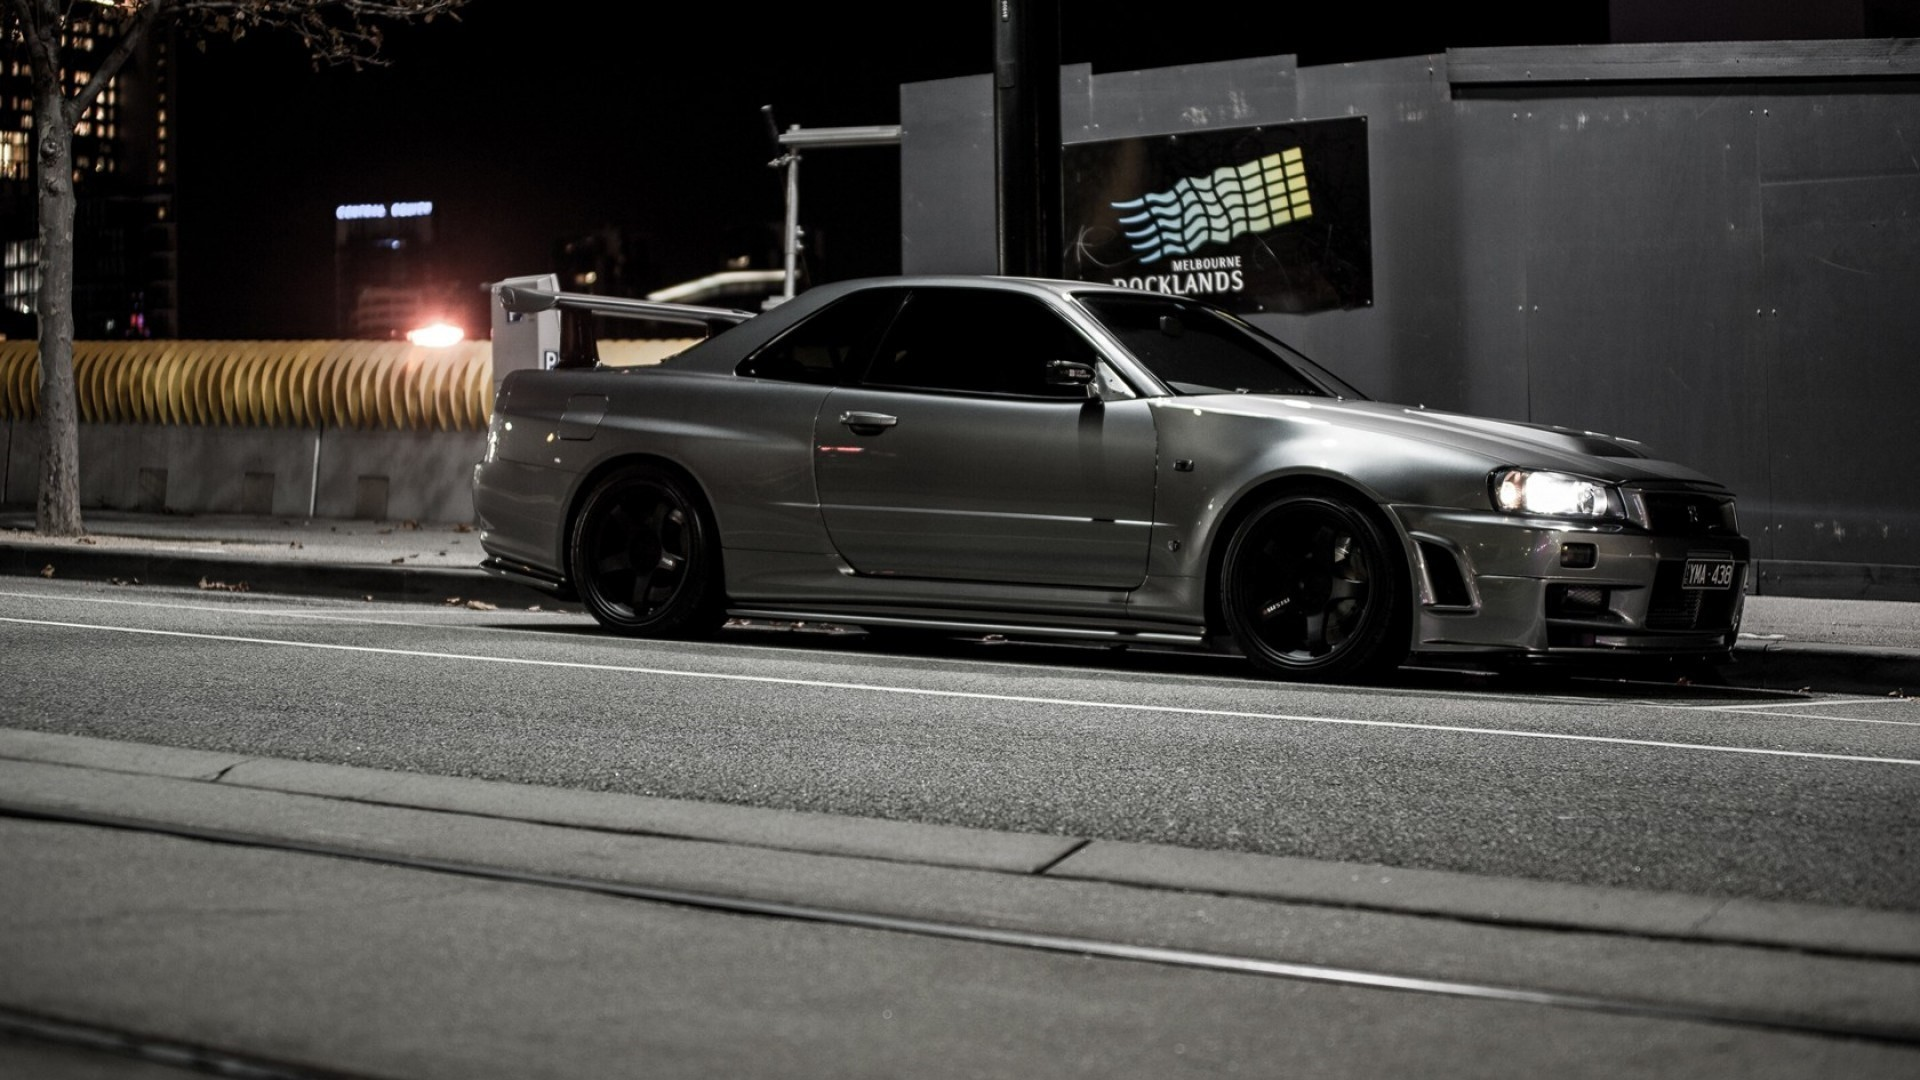 nissan skyline gtr r34 wallpaper ·①